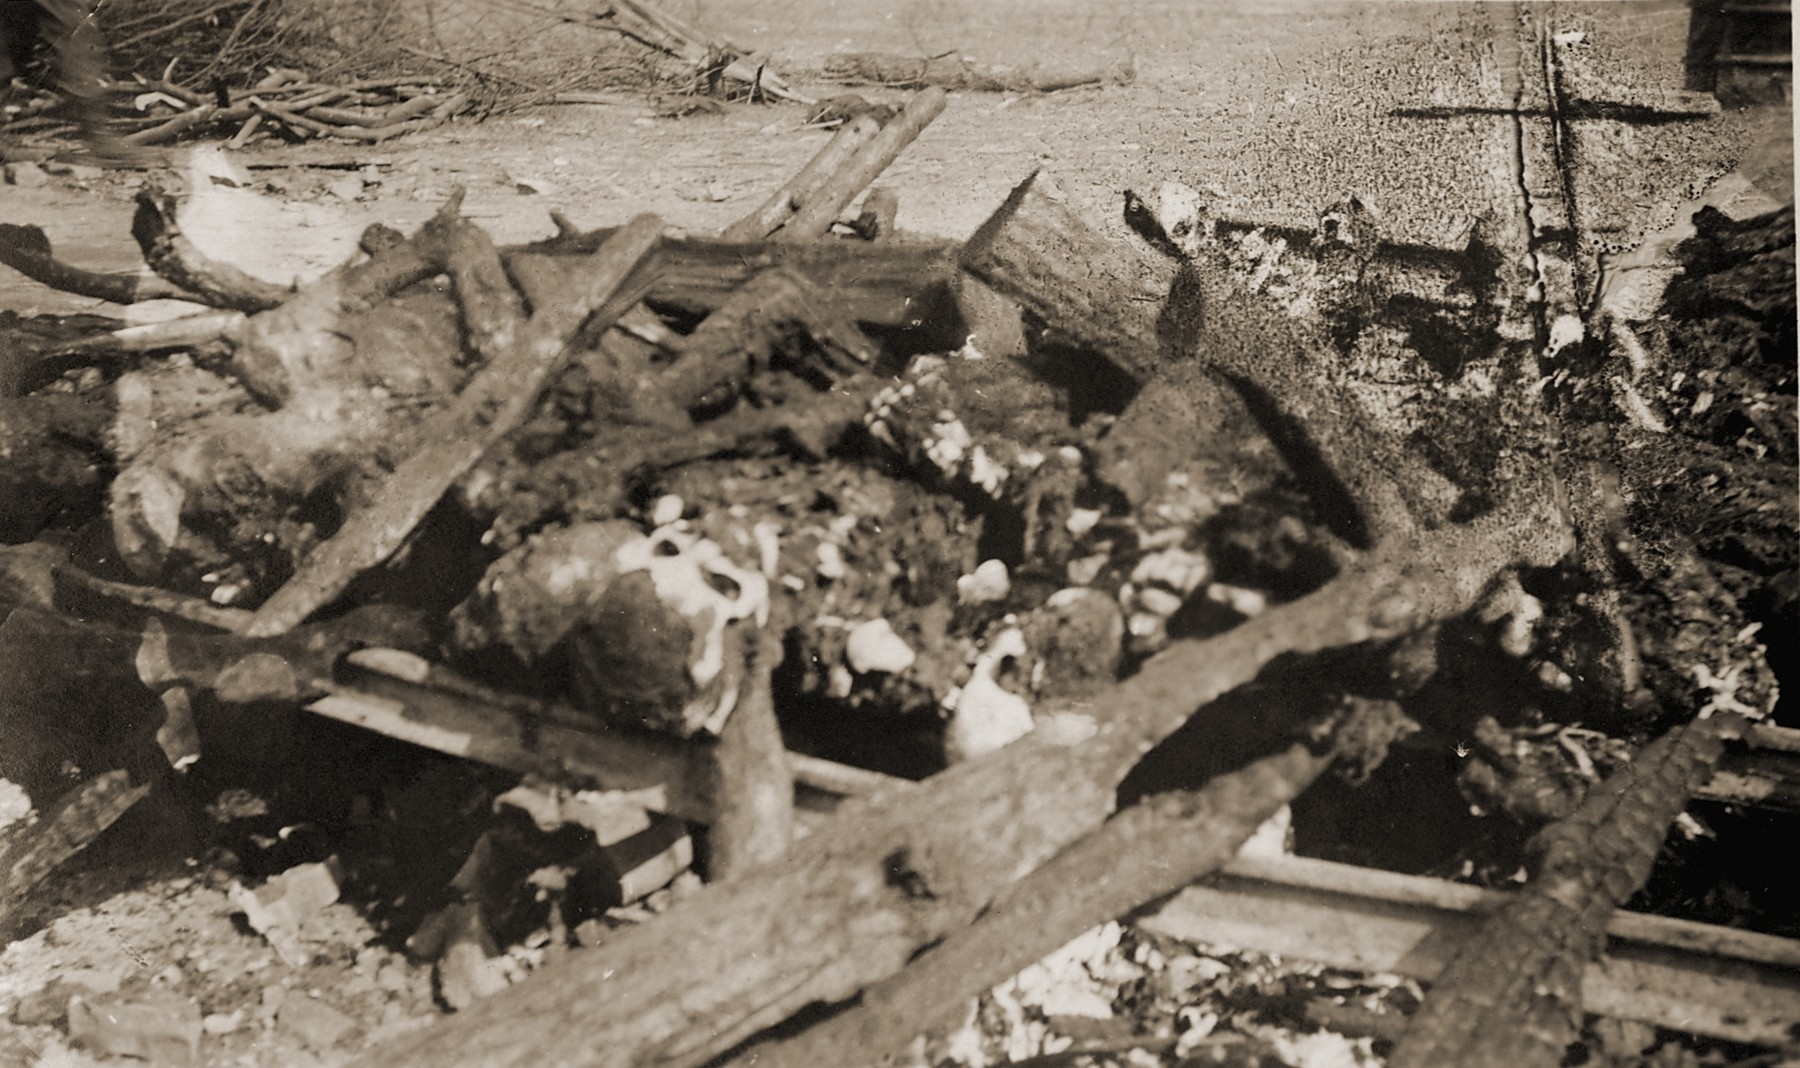 The charred corpses of prisoners burned on a pyre just prior to the liberation of the camp by the American Army.